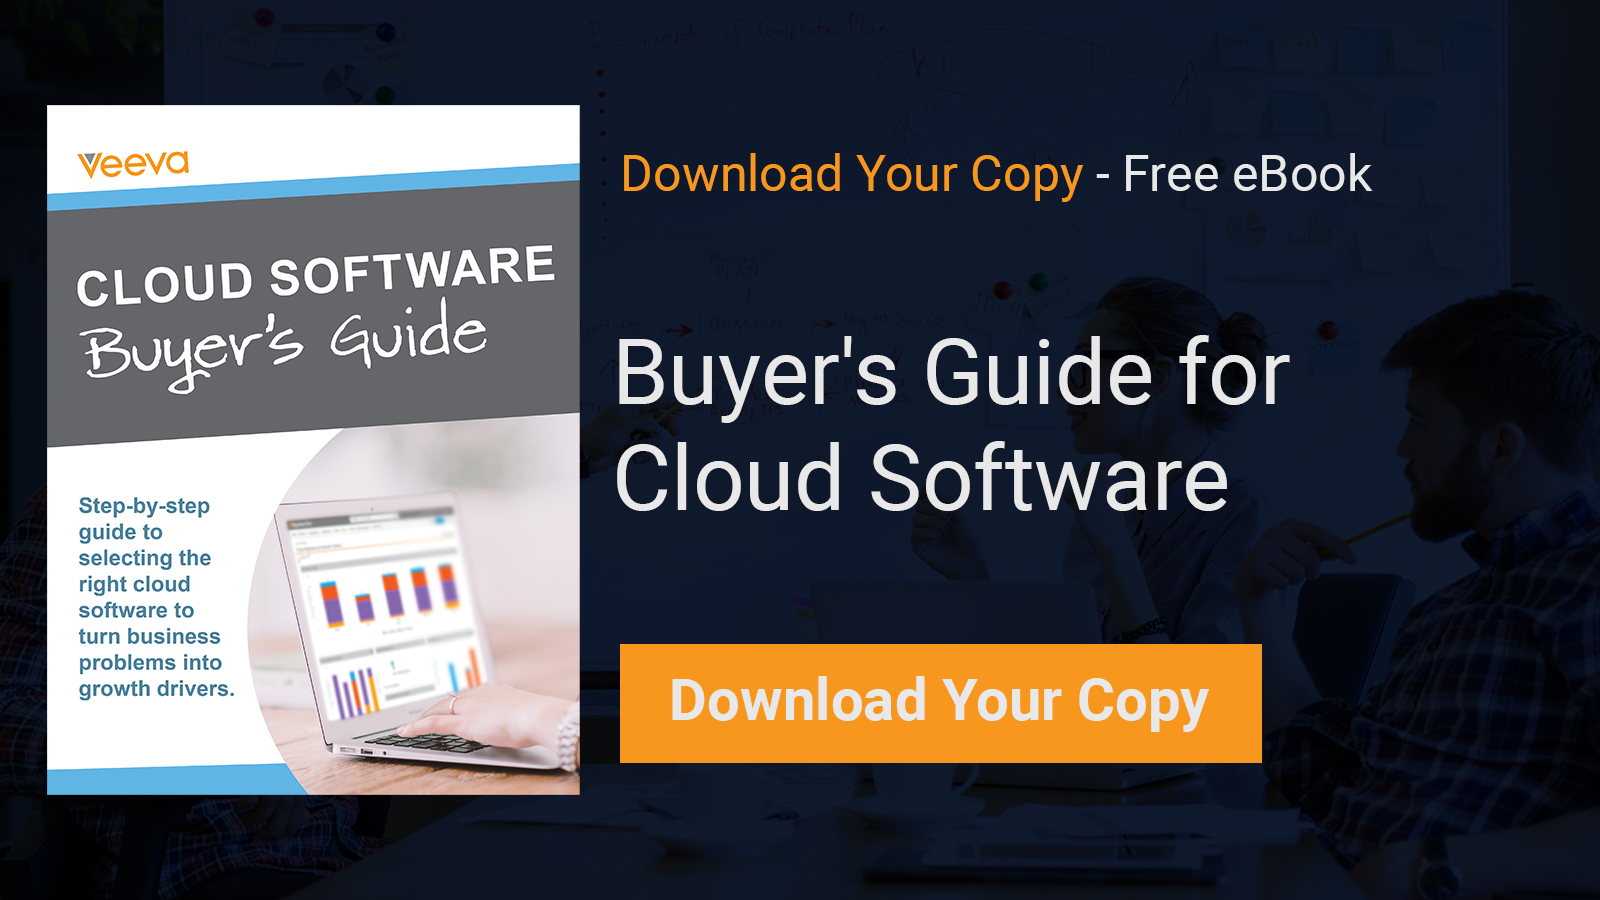 Exclusive eBook: Buyer's Guide for Cloud Software